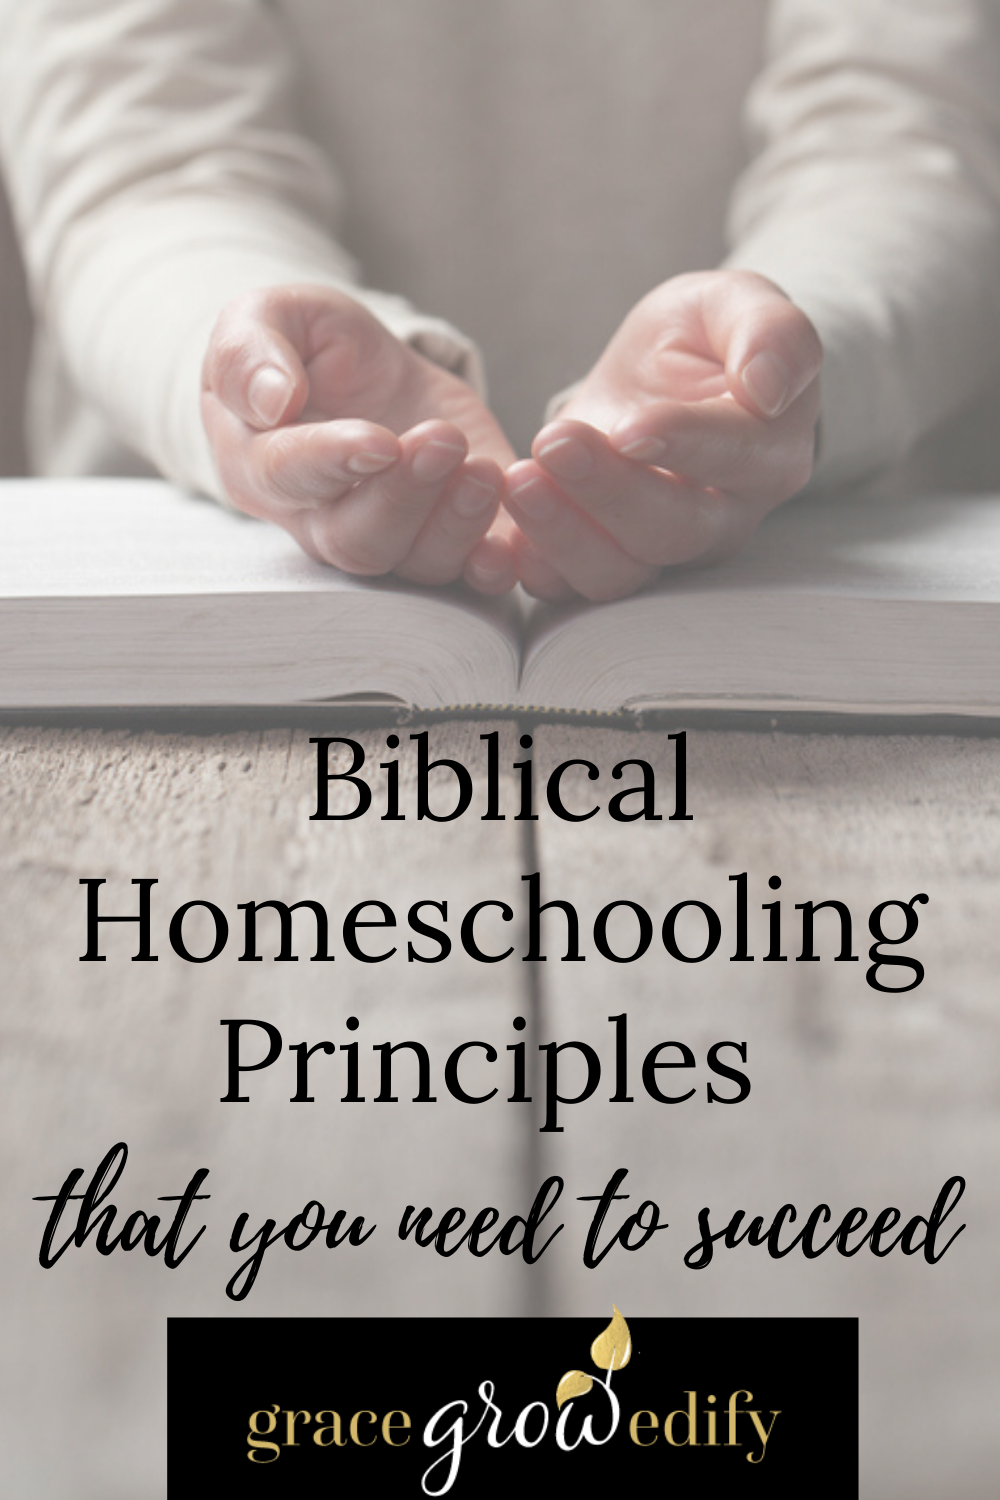 Biblical Homeschooling